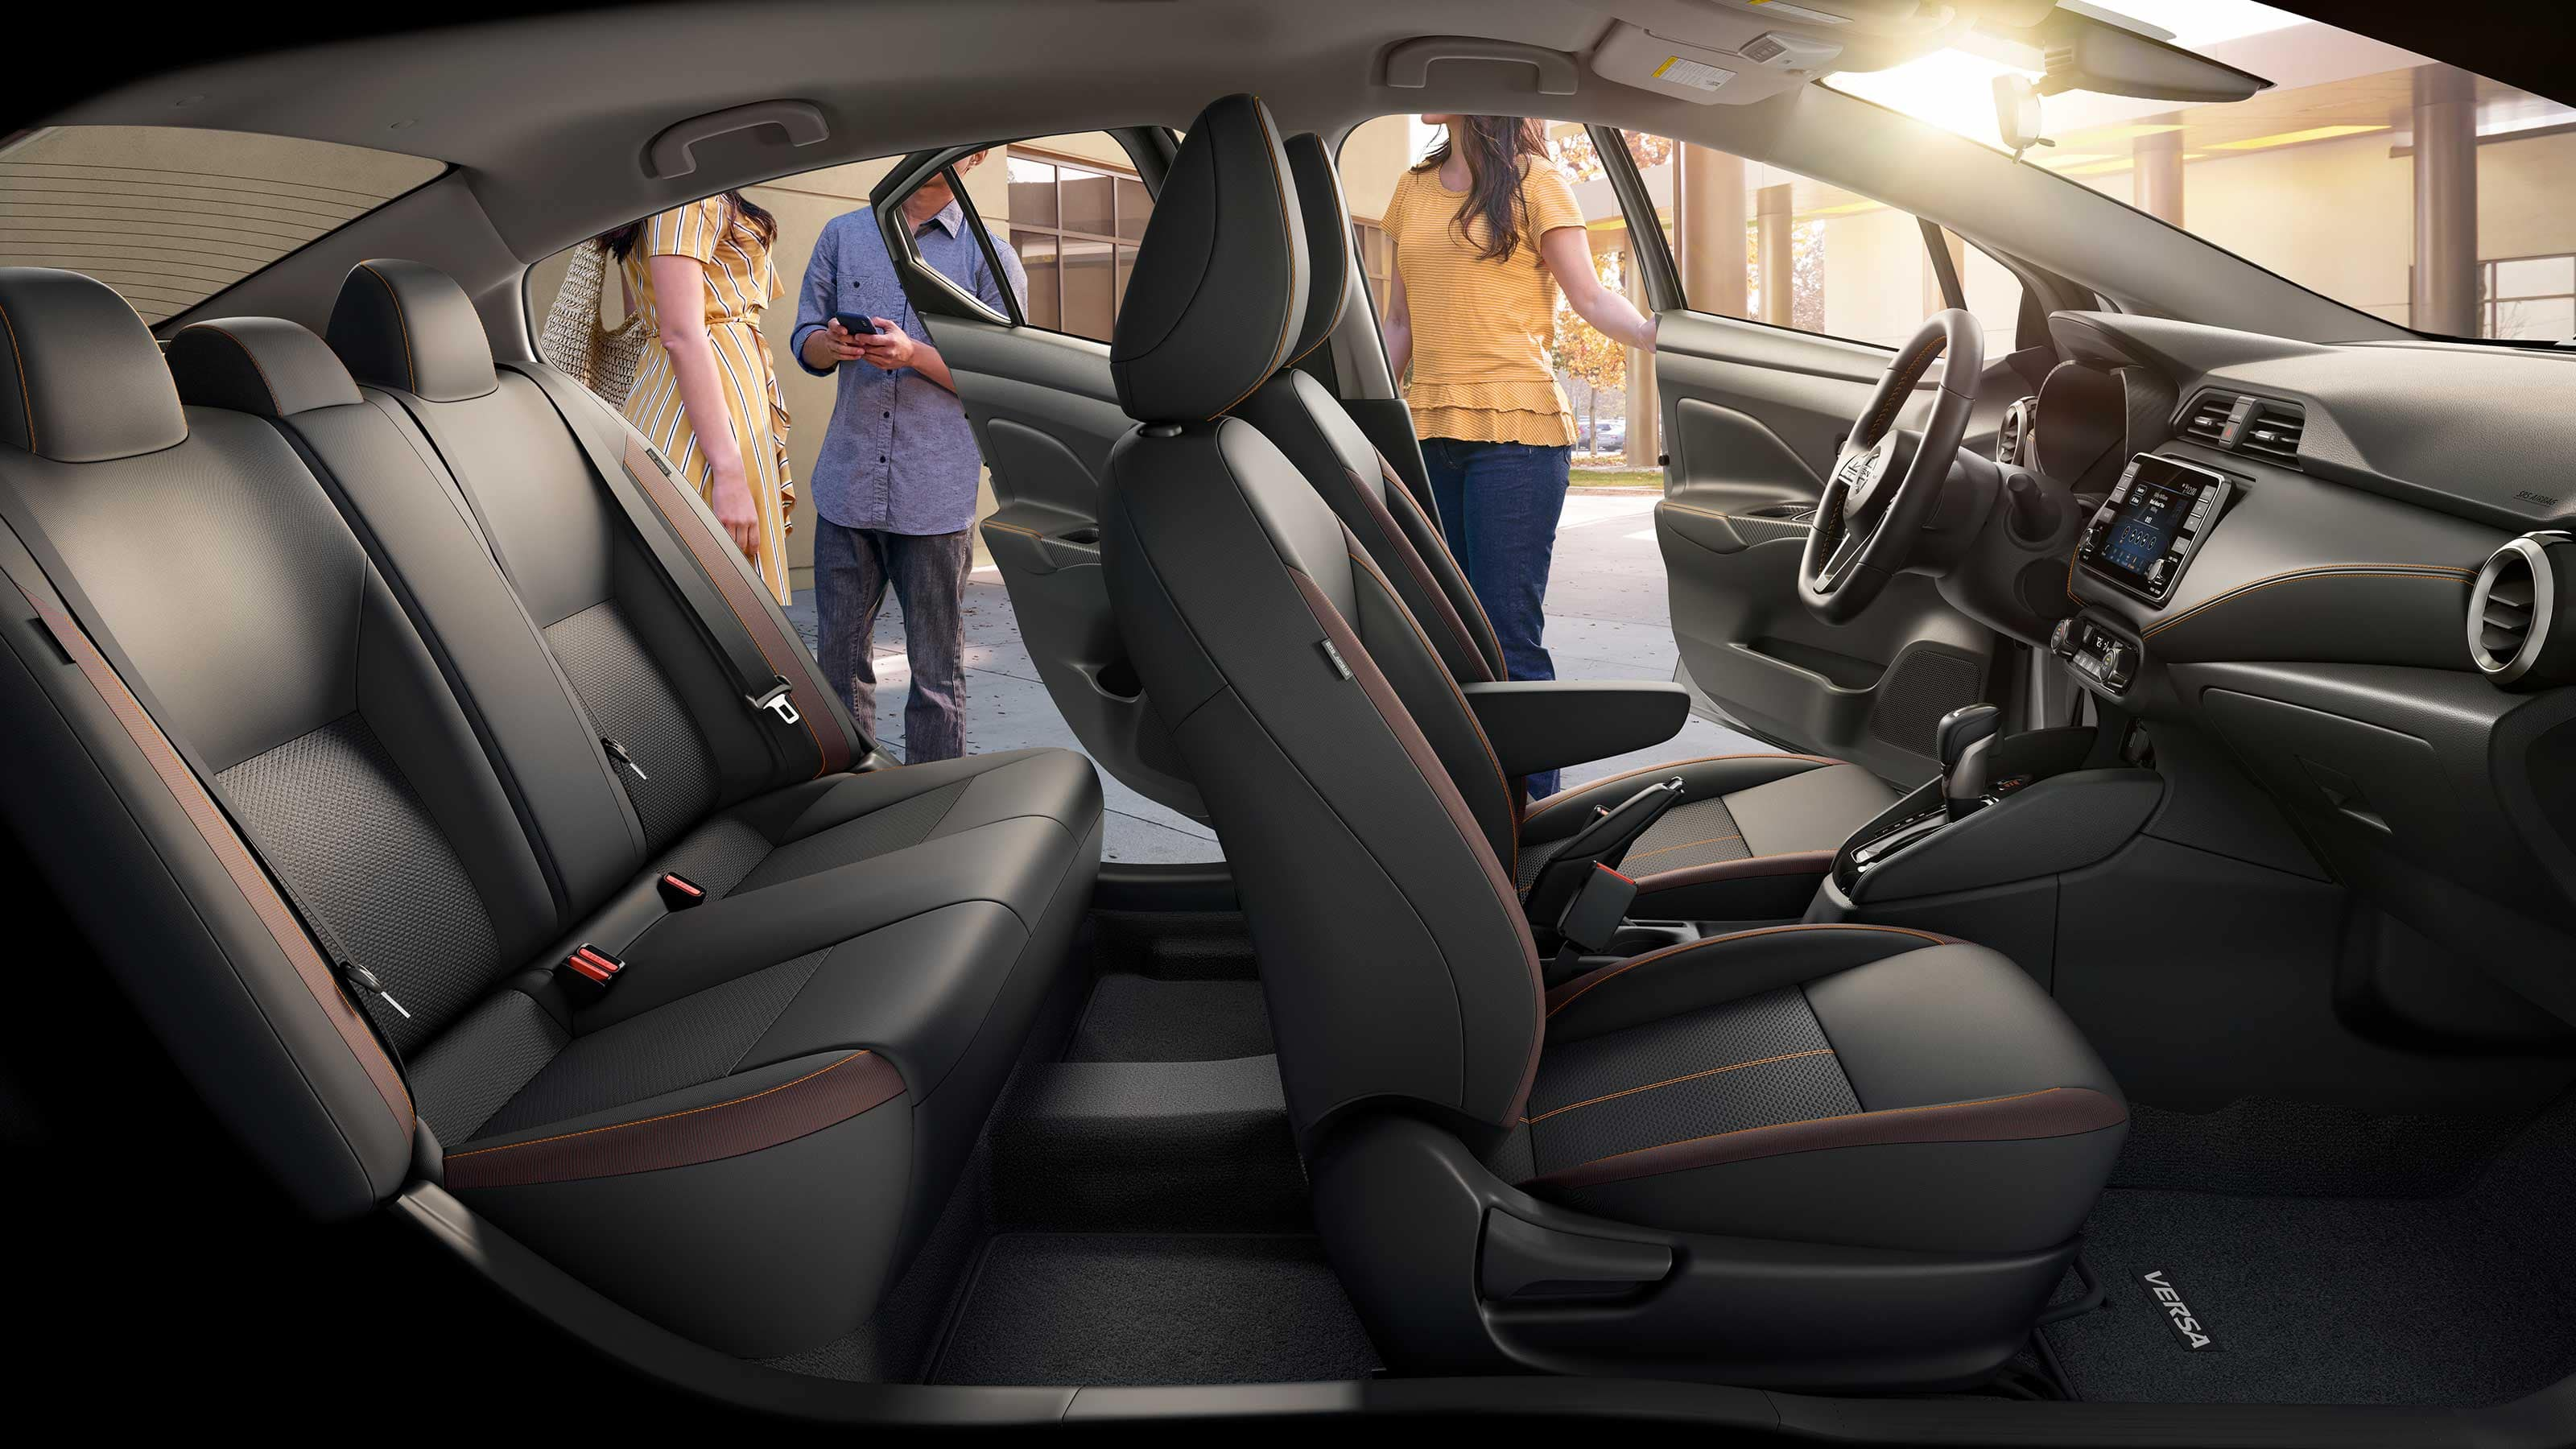 2020 Nissan Versa Full Seating